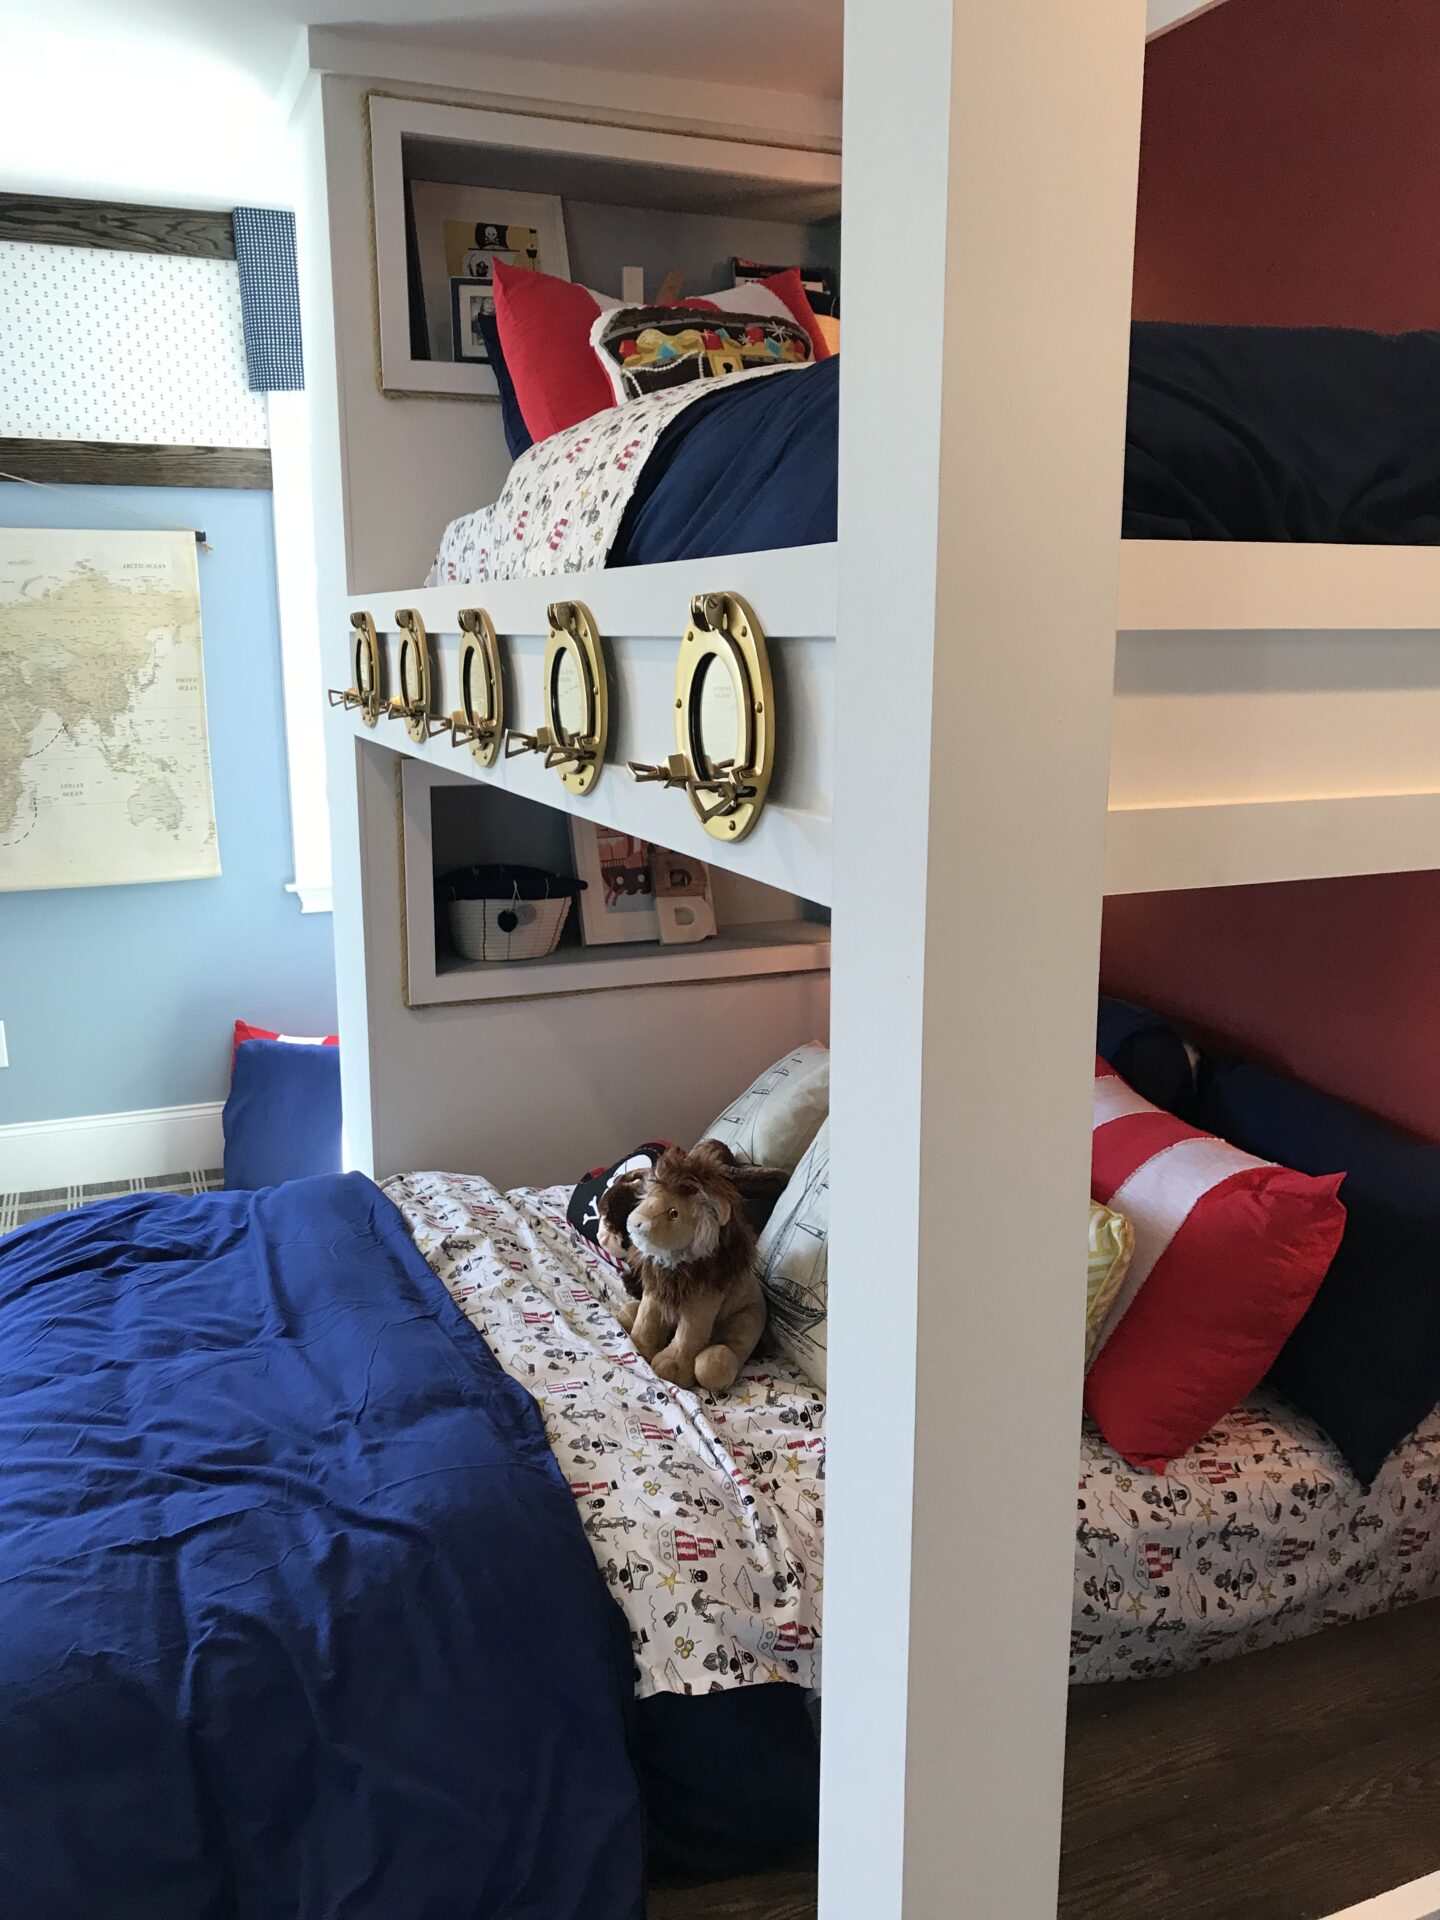 How To Loft A Dorm Bed In College